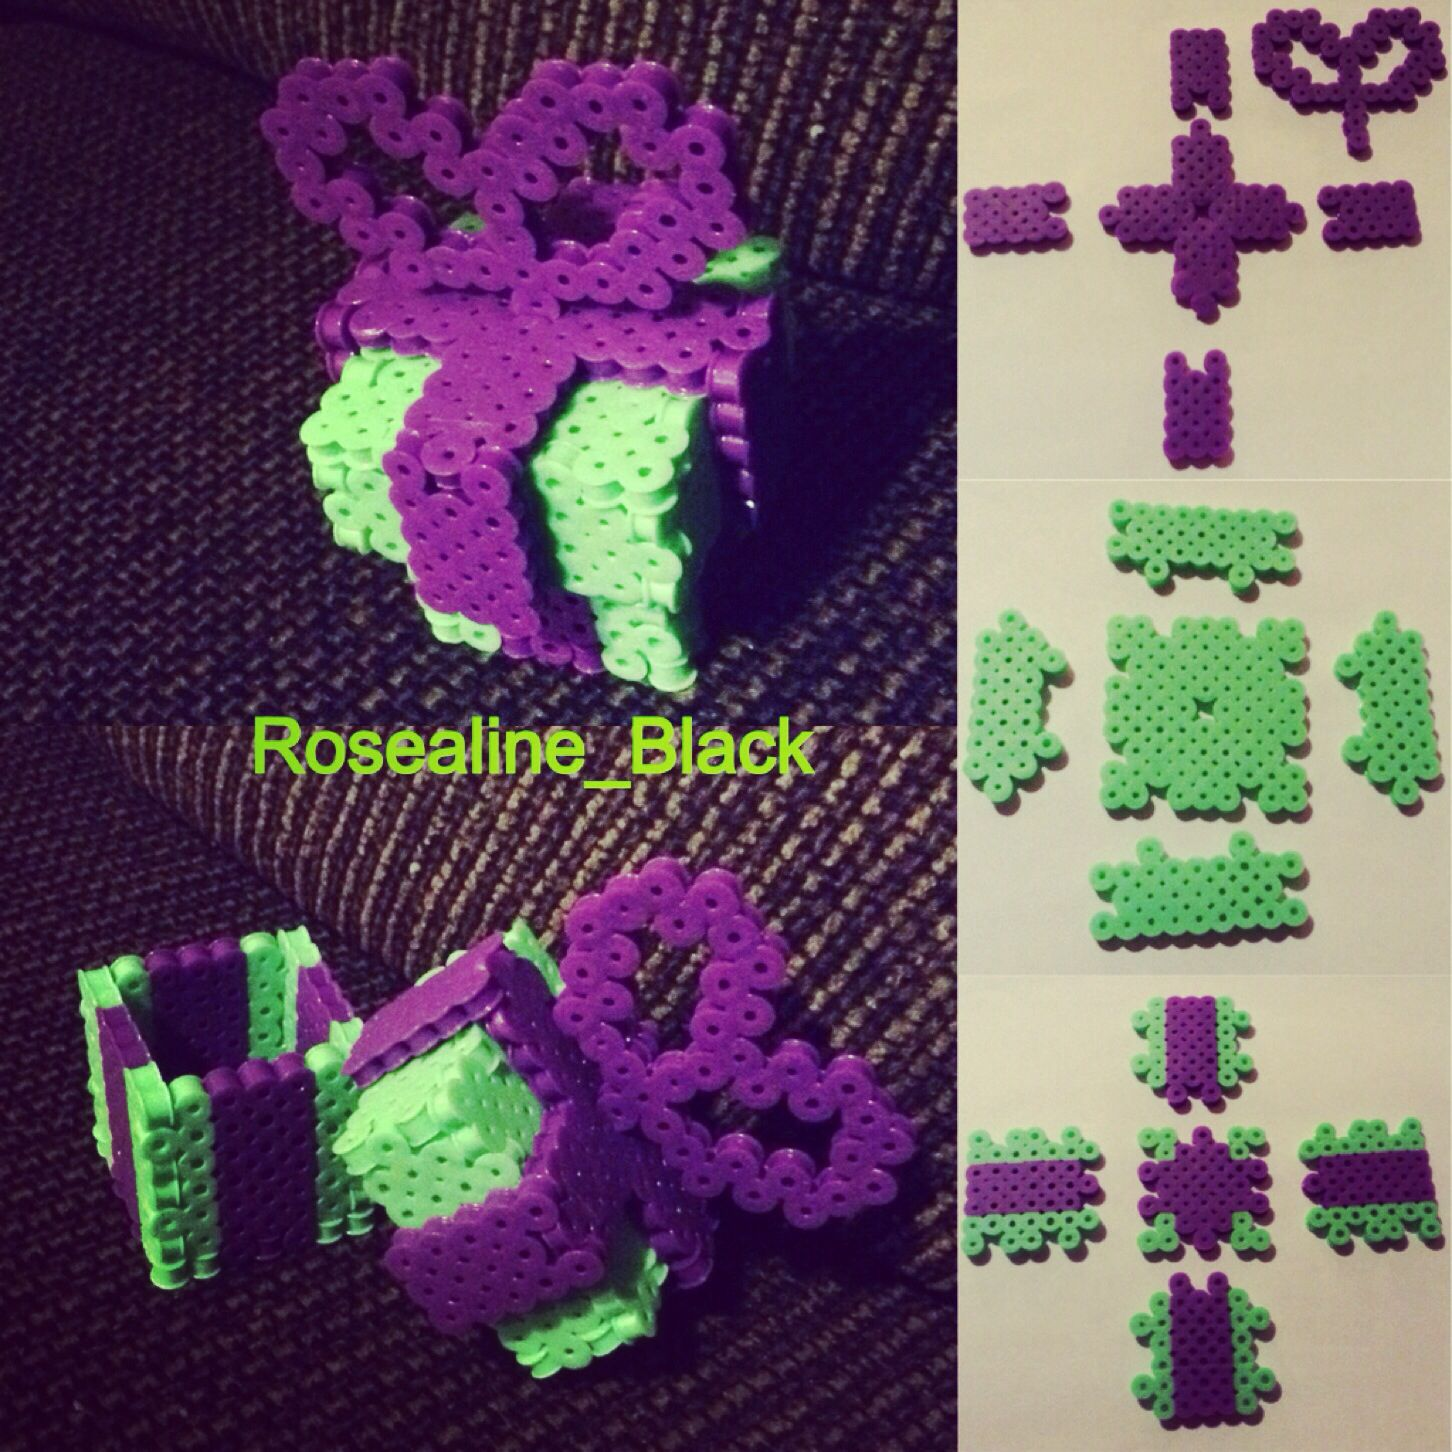 hight resolution of 3d perler bead box pattern designed and made by rosealine black